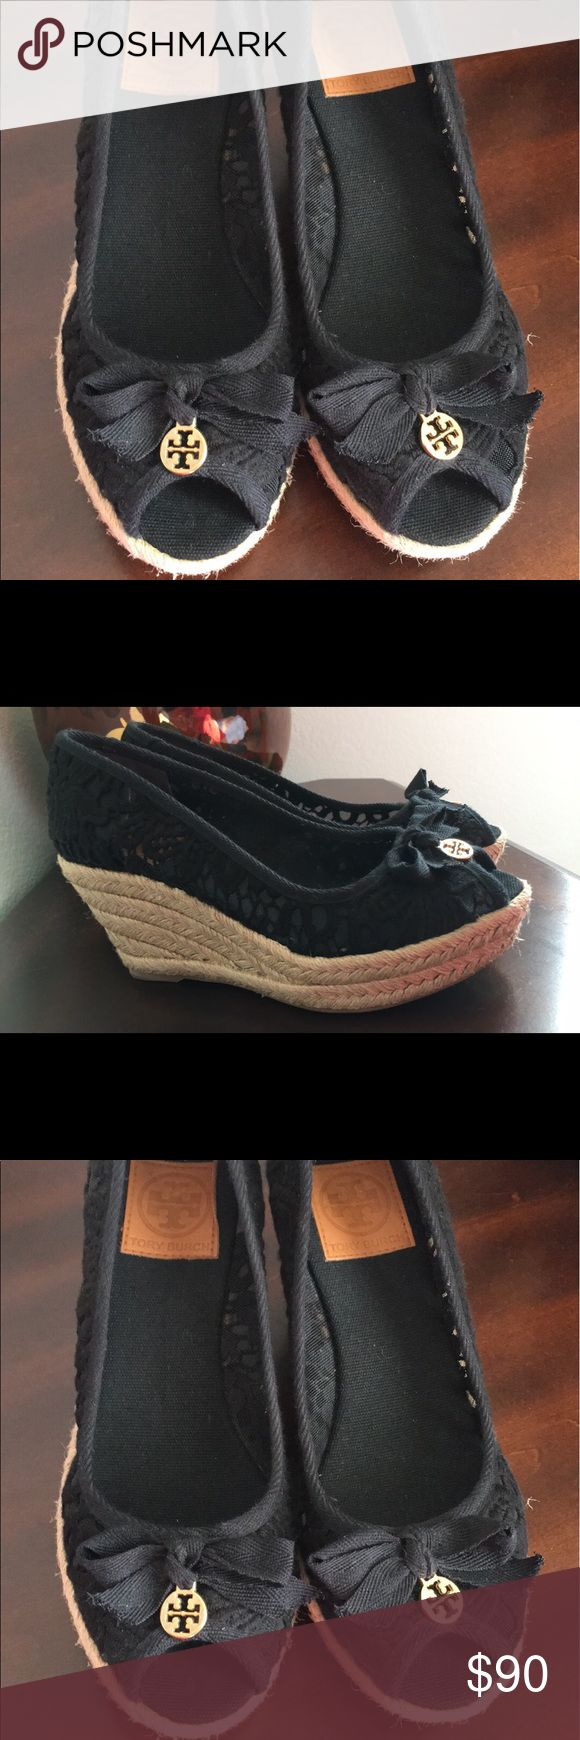 Tory burch black wedges Like new! Used once for a few hours. Bought at 115+tax at Nordstrom's rack. Tory Burch Shoes Wedges